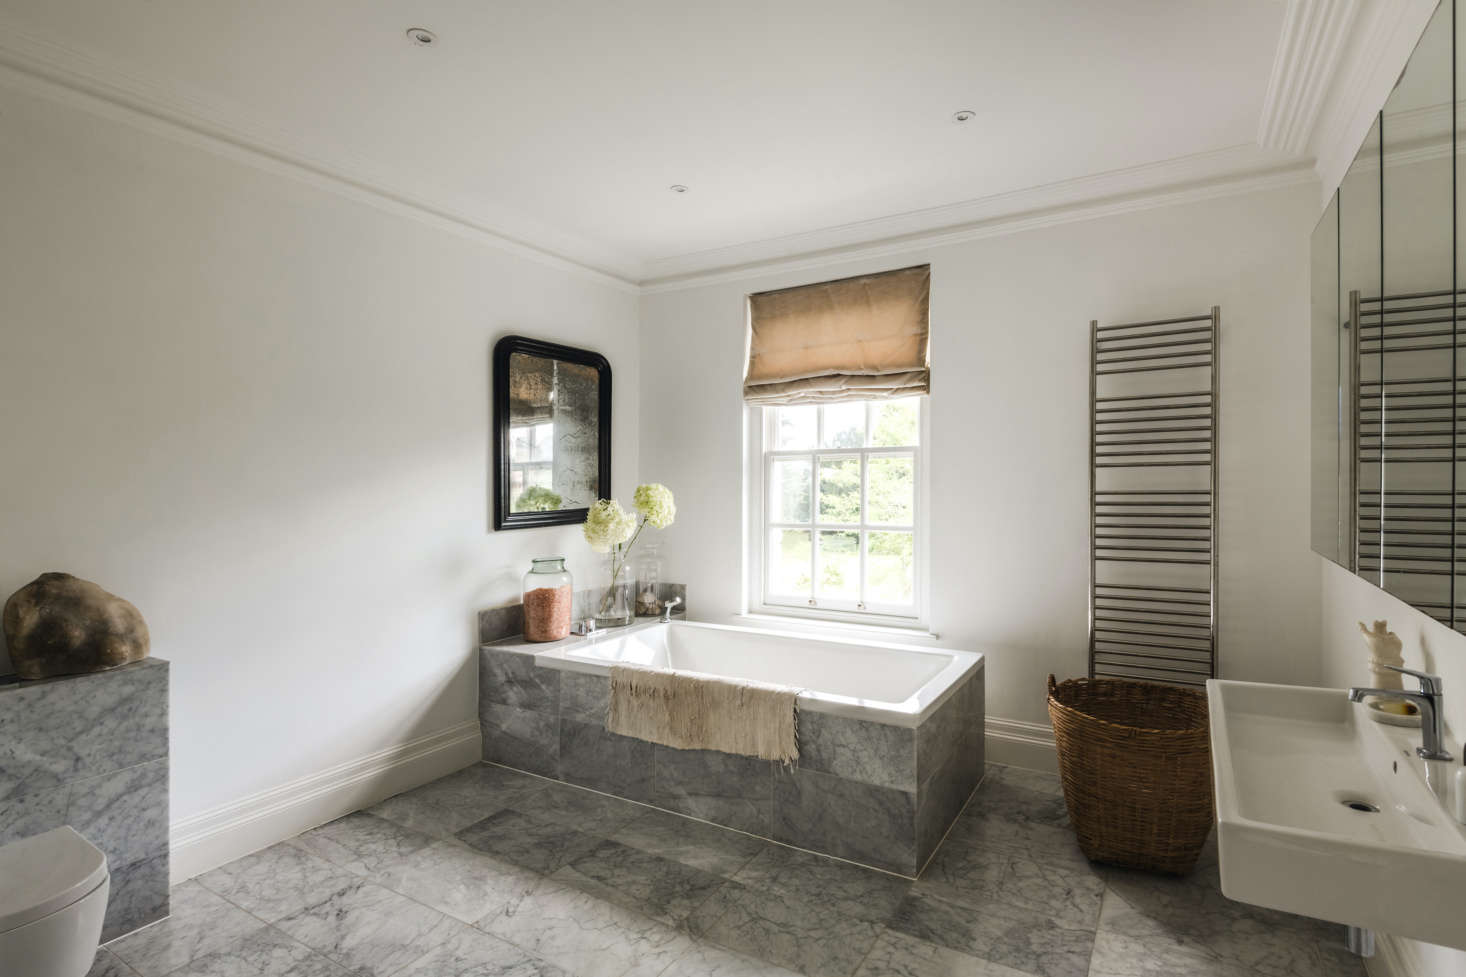 The master bath is tiled in gray-veined marble that rises to enclose the tub. The trough sink and towel rail are from C.P. Hart.